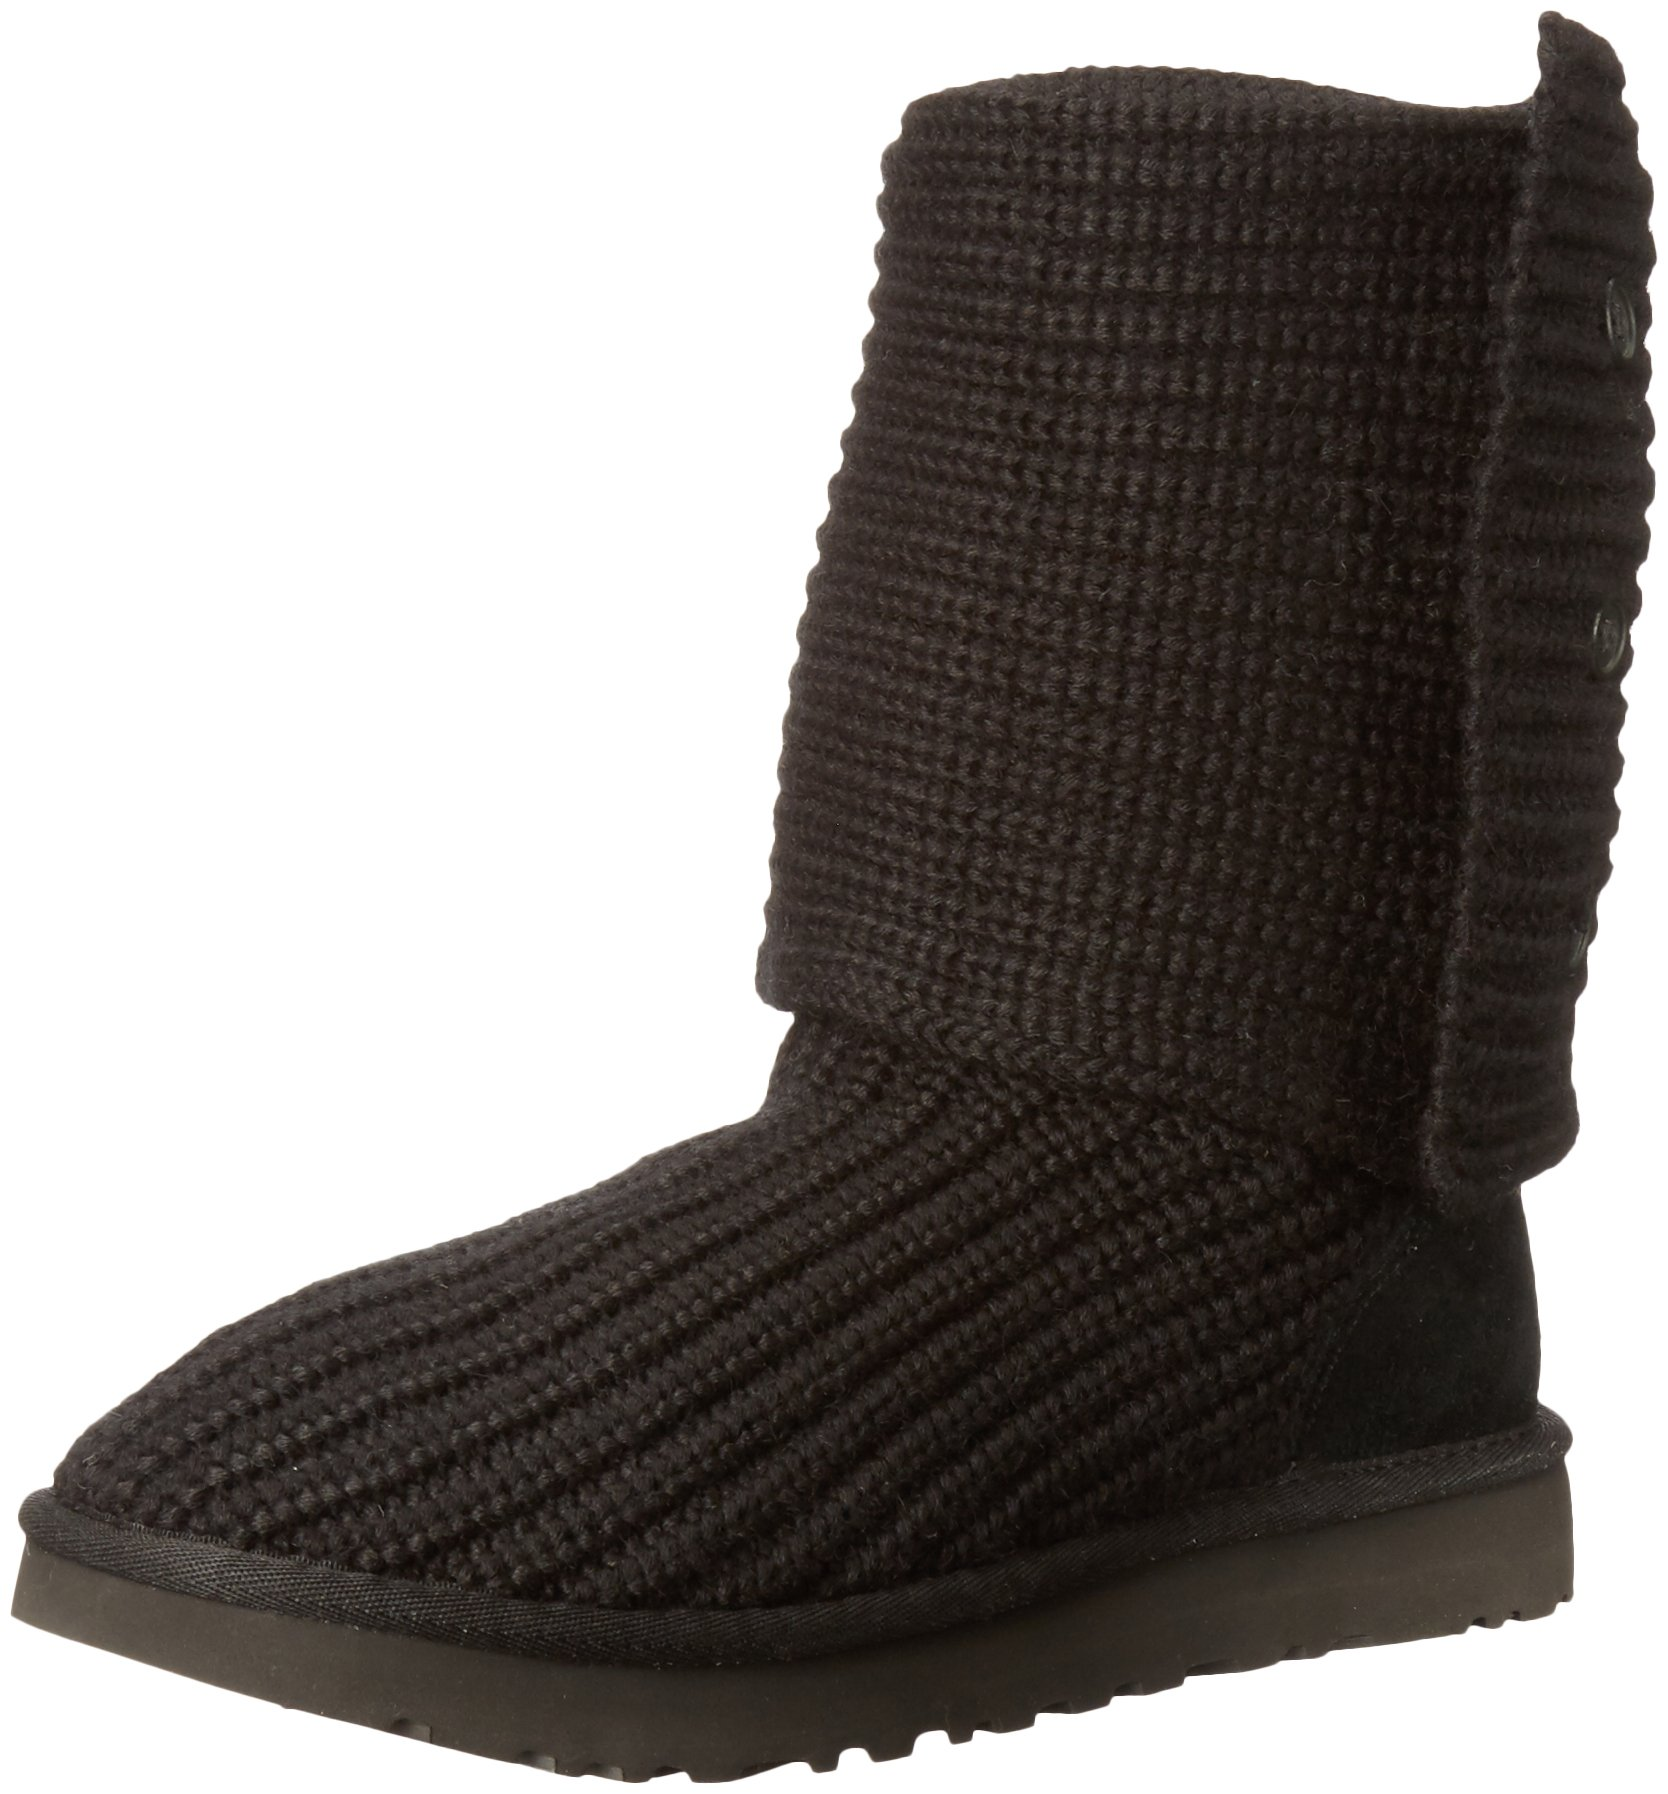 UGG Women's Classic Cardy Winter Boot, Black, 5 B US by UGG